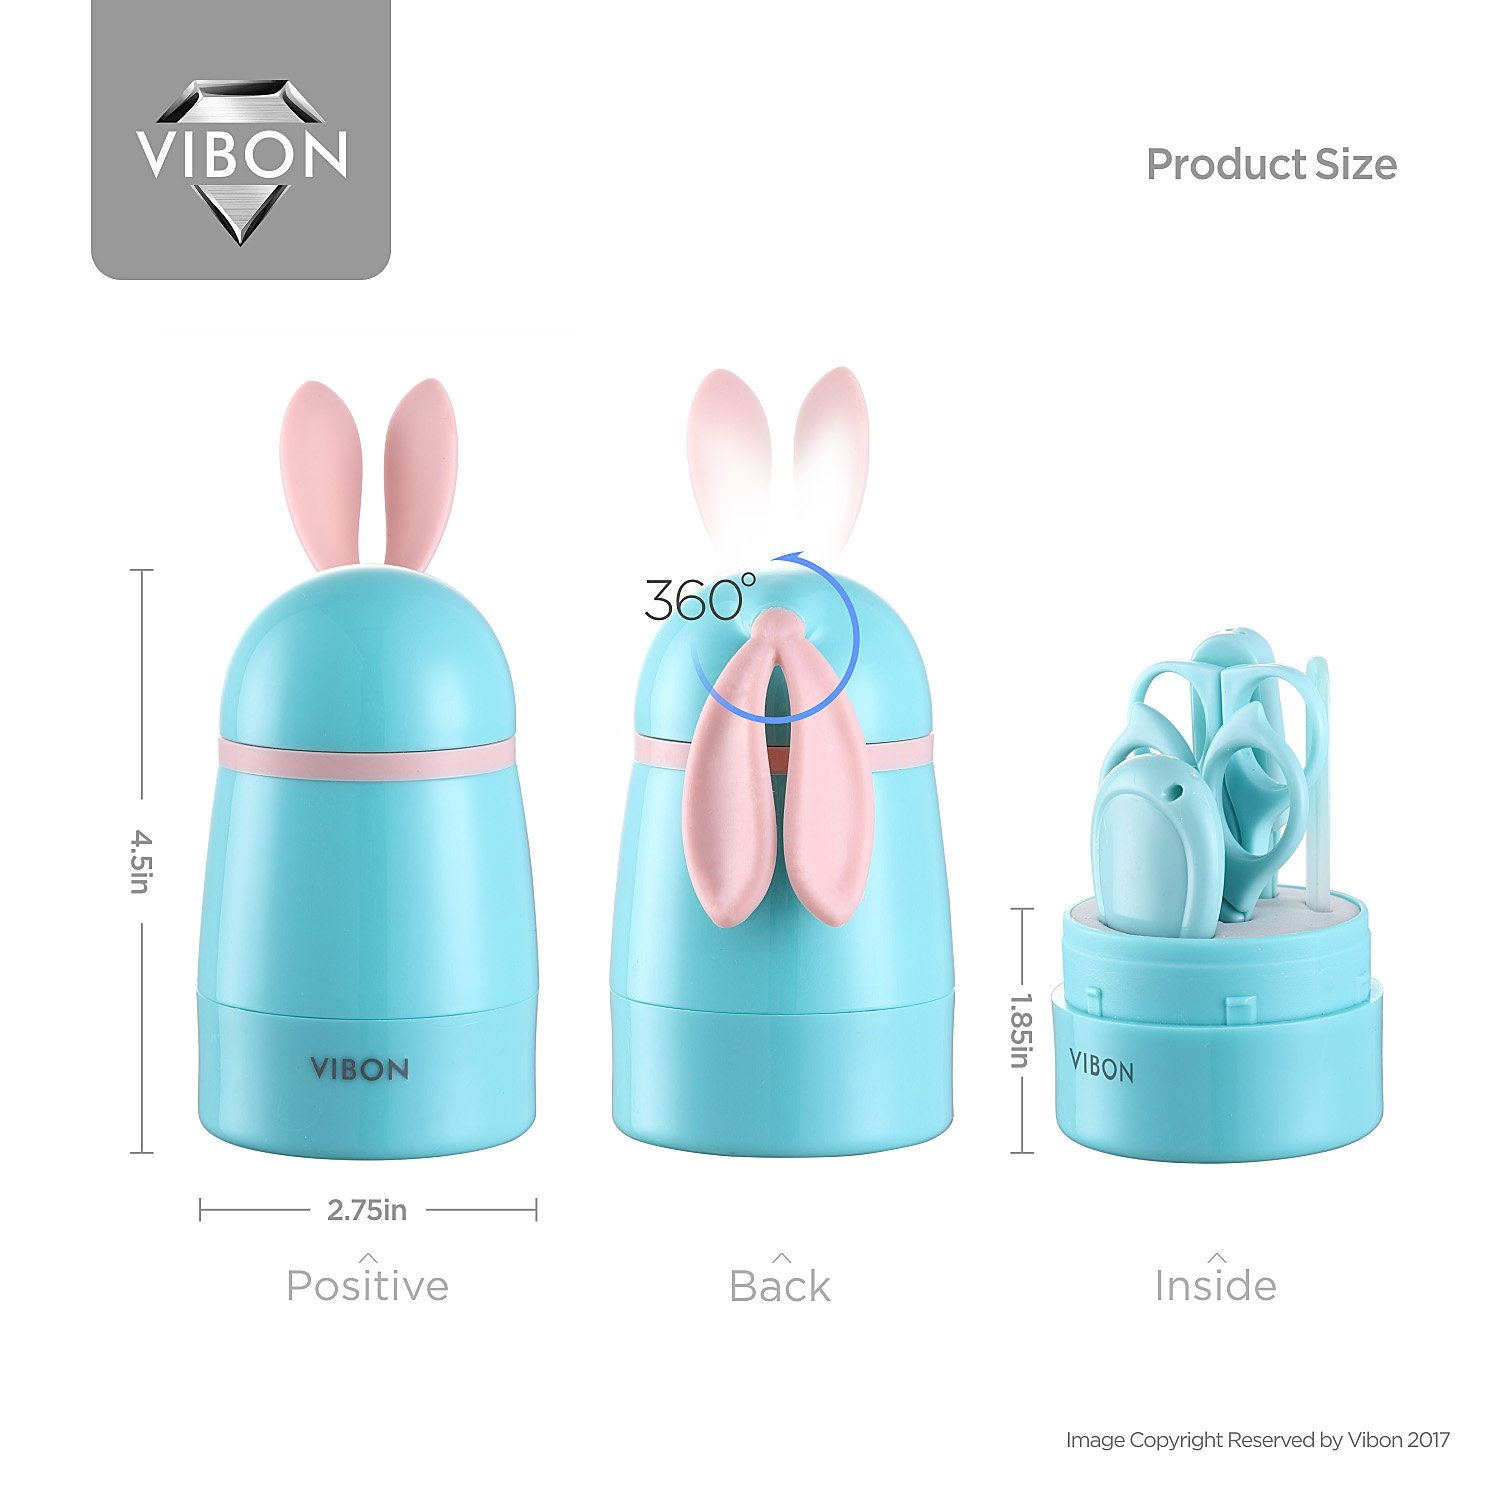 VIBON Green Rabbit Shape Baby Manicure Kit,Safe Baby Nail Clipper,Scissors,Tweezers and Nail File(5Pcs),Baby Nail Care Set for Newborn,Infant,Toddler,Kids